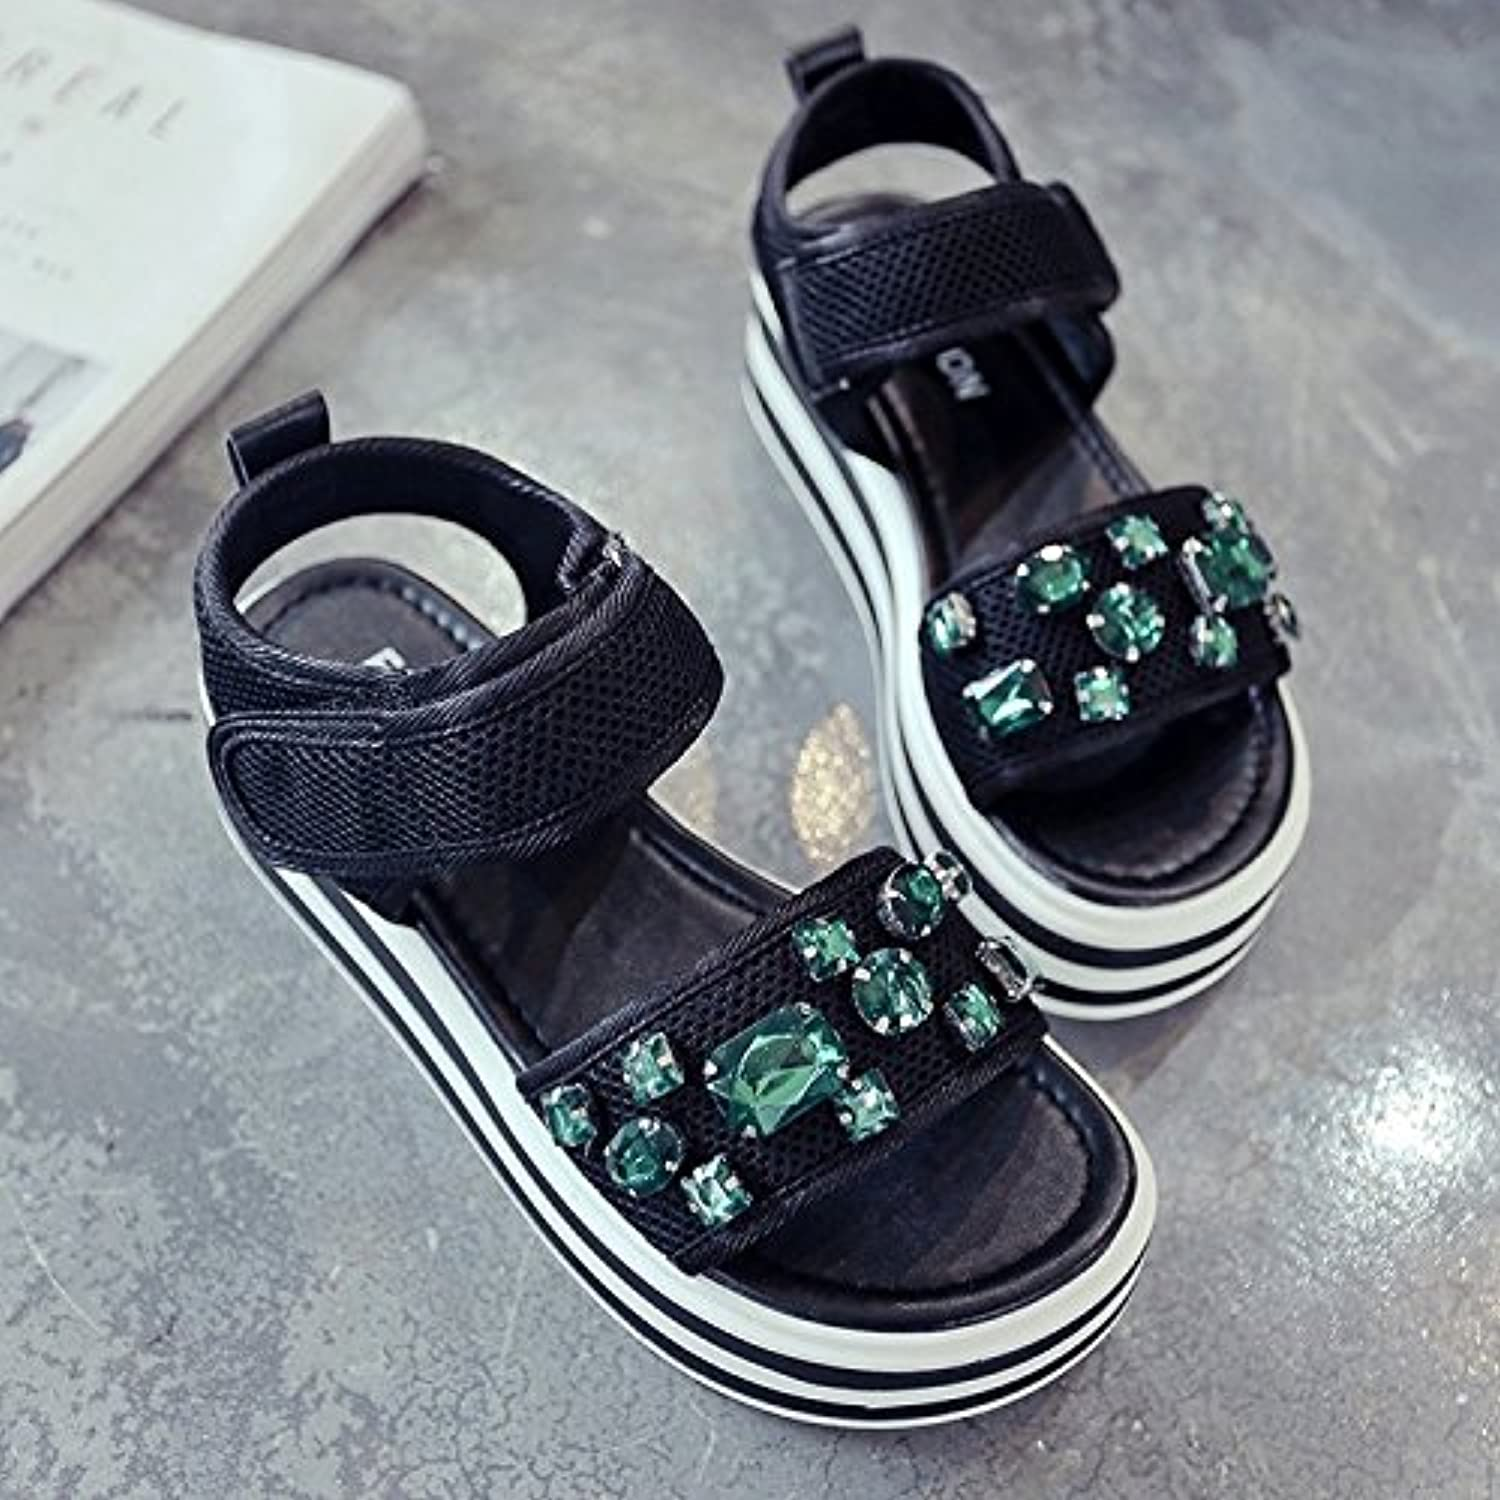 LHJY Casual Sandals Fashionable Muffins Women's Summer Comfortable shoes Sandals and Sandals